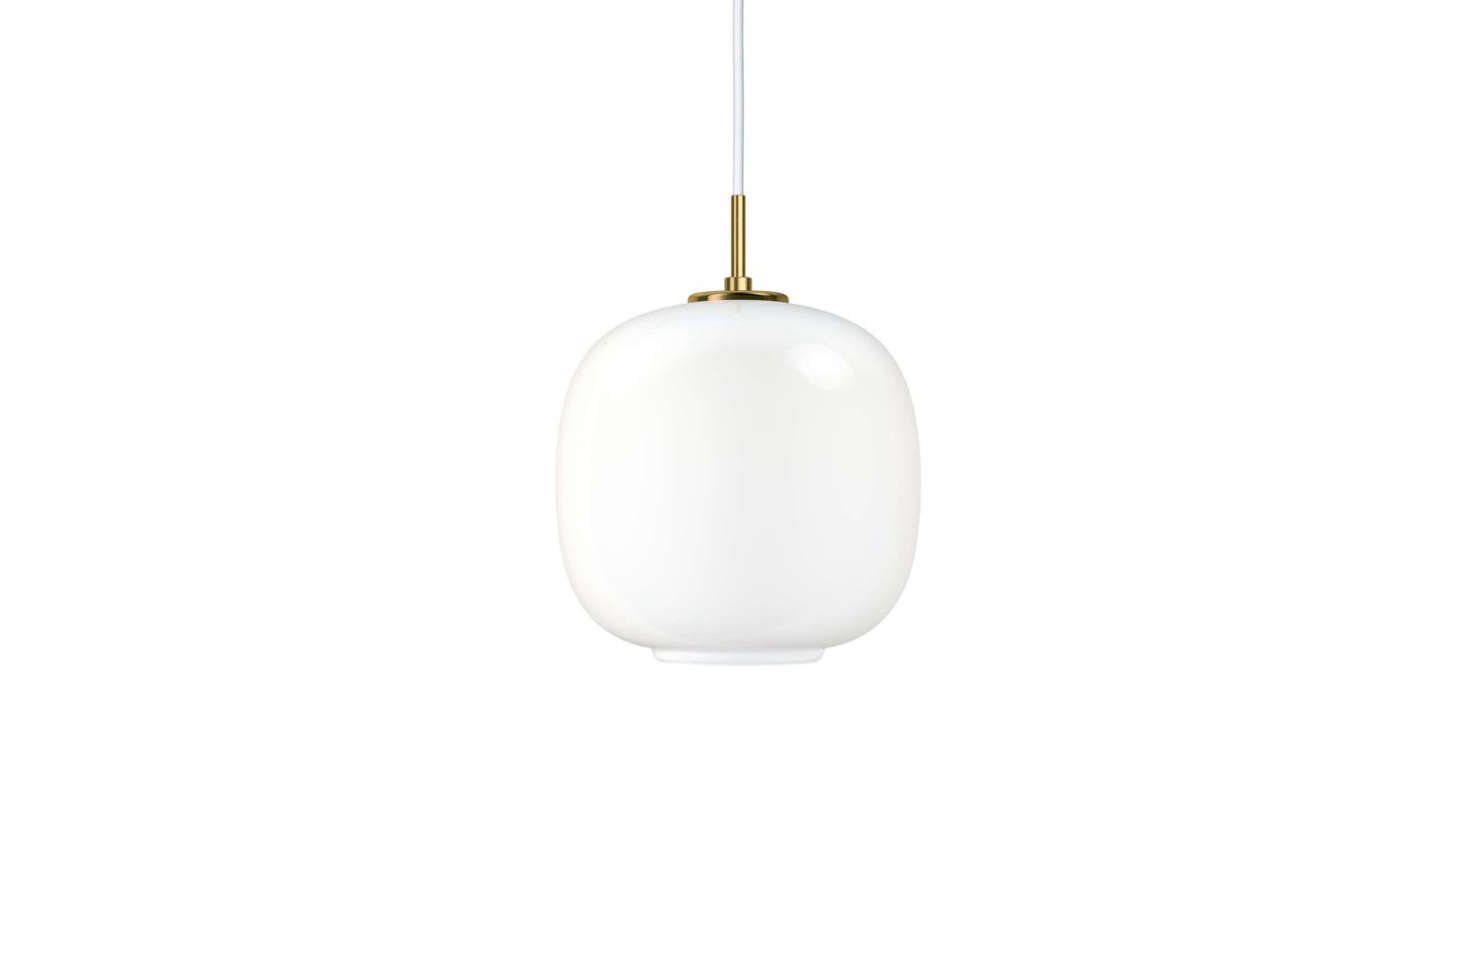 :Each Radiohus pendant is made of three layers of handblown glass, with the innermost and outermost layers made of transparent polished glass, with white glass for the middle layer. The Large VL45 Radiohus Pendant is $830 and the Small VL45 Radiohus Pendant is $6 at Y Lighting.